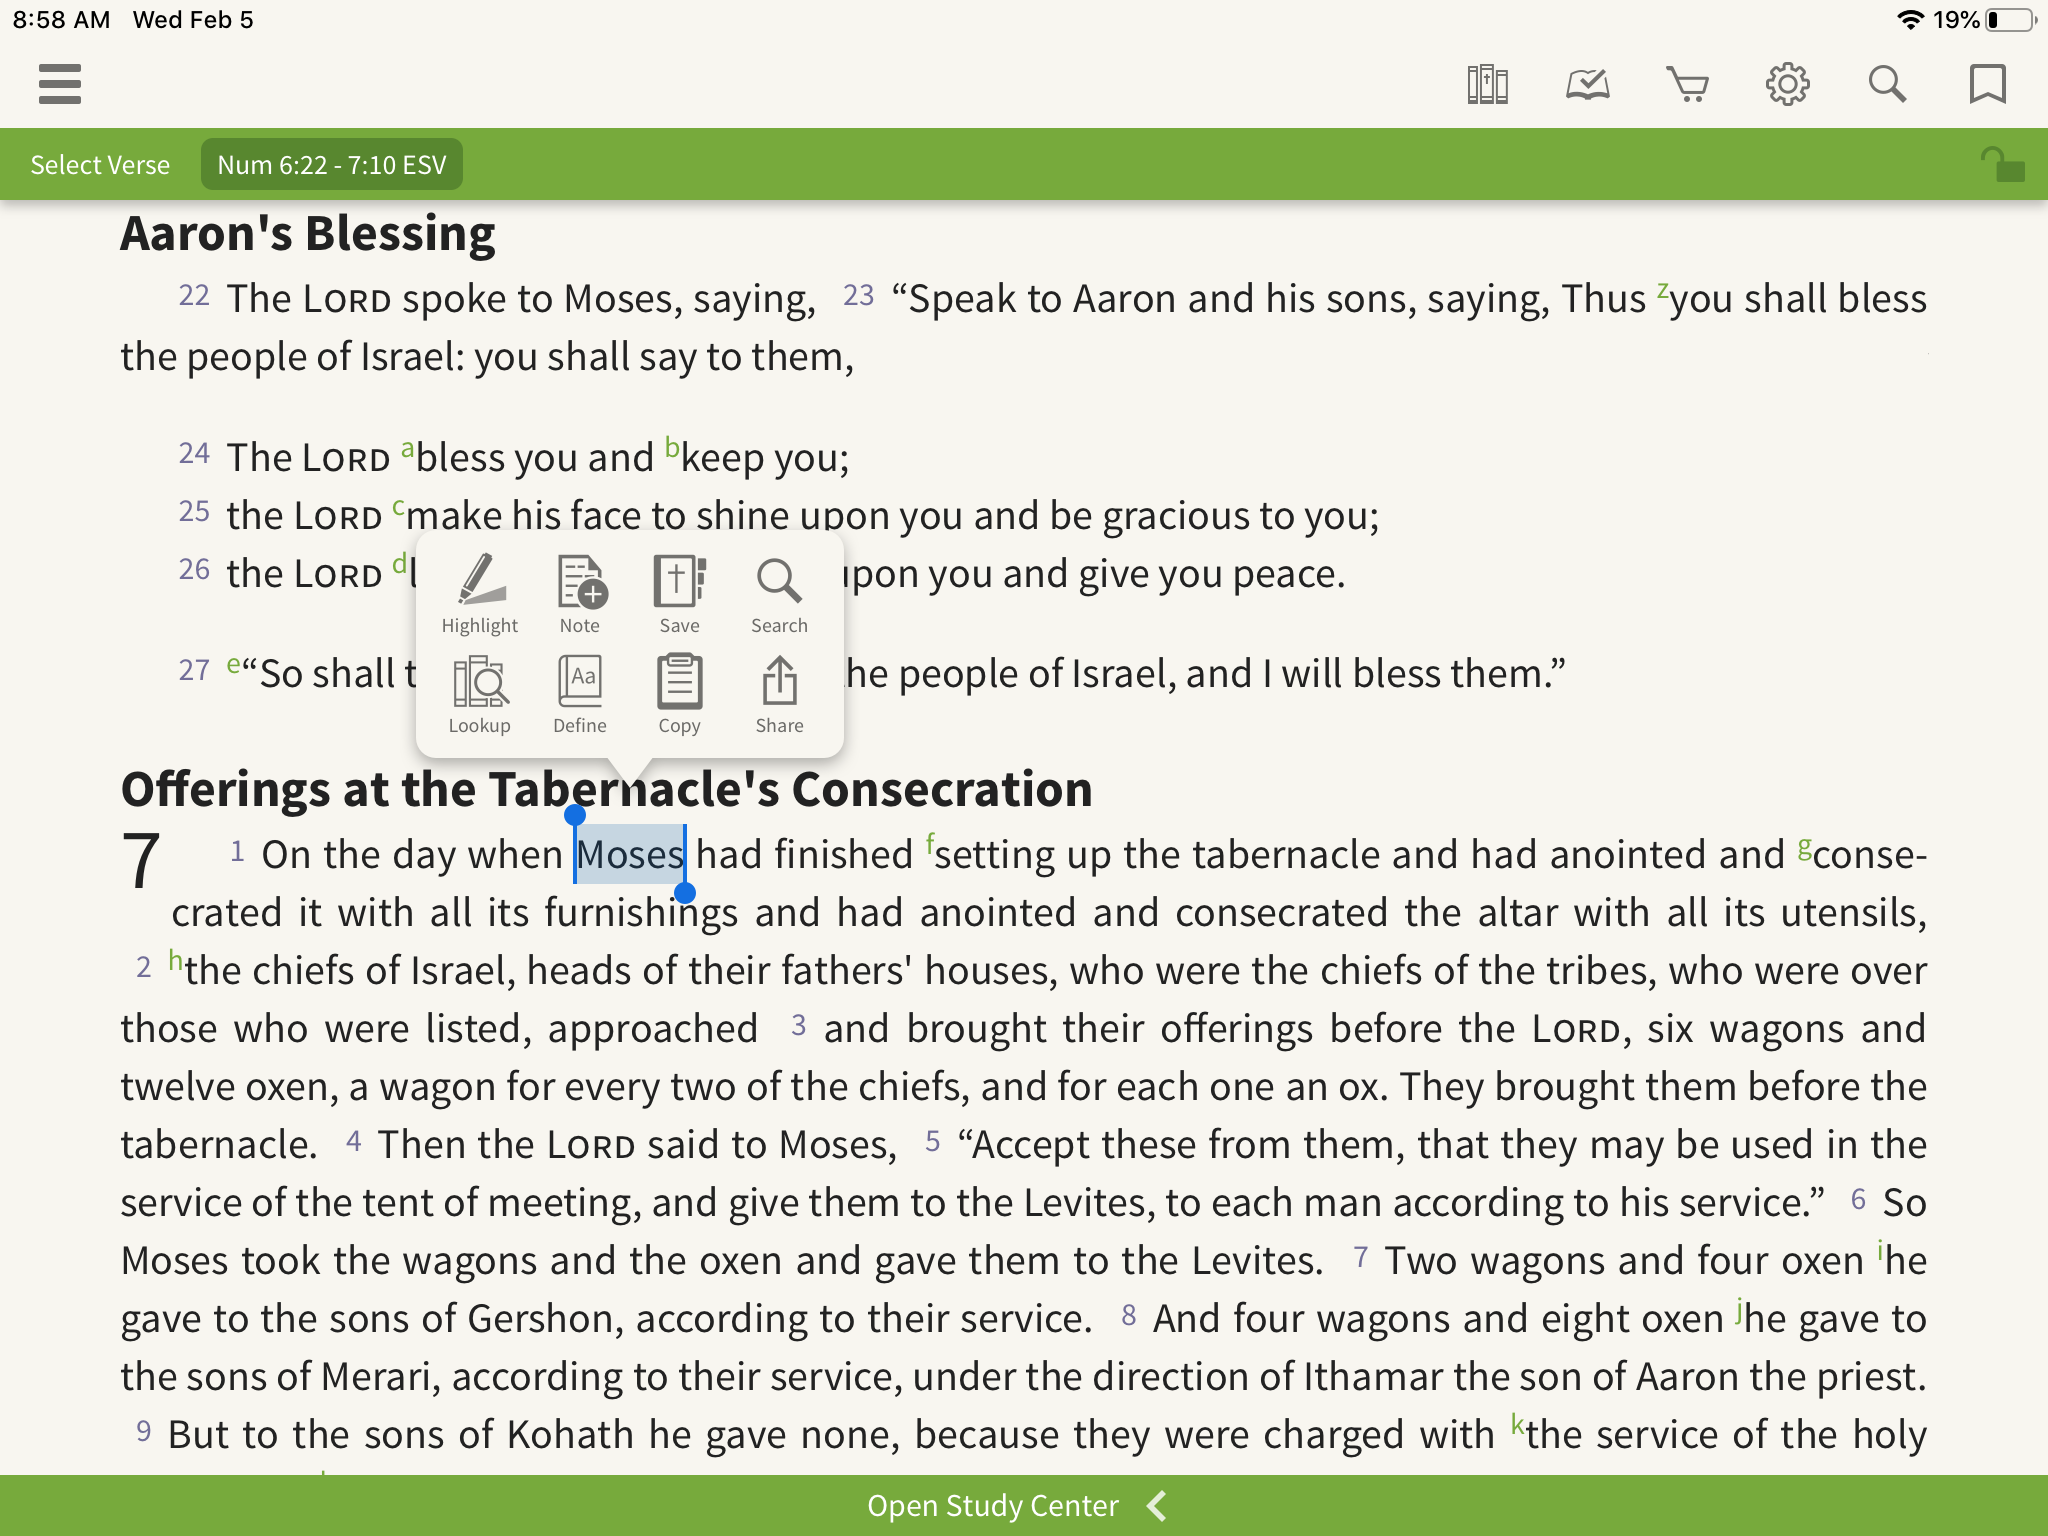 Olive tree Bible App open to Numbers 6